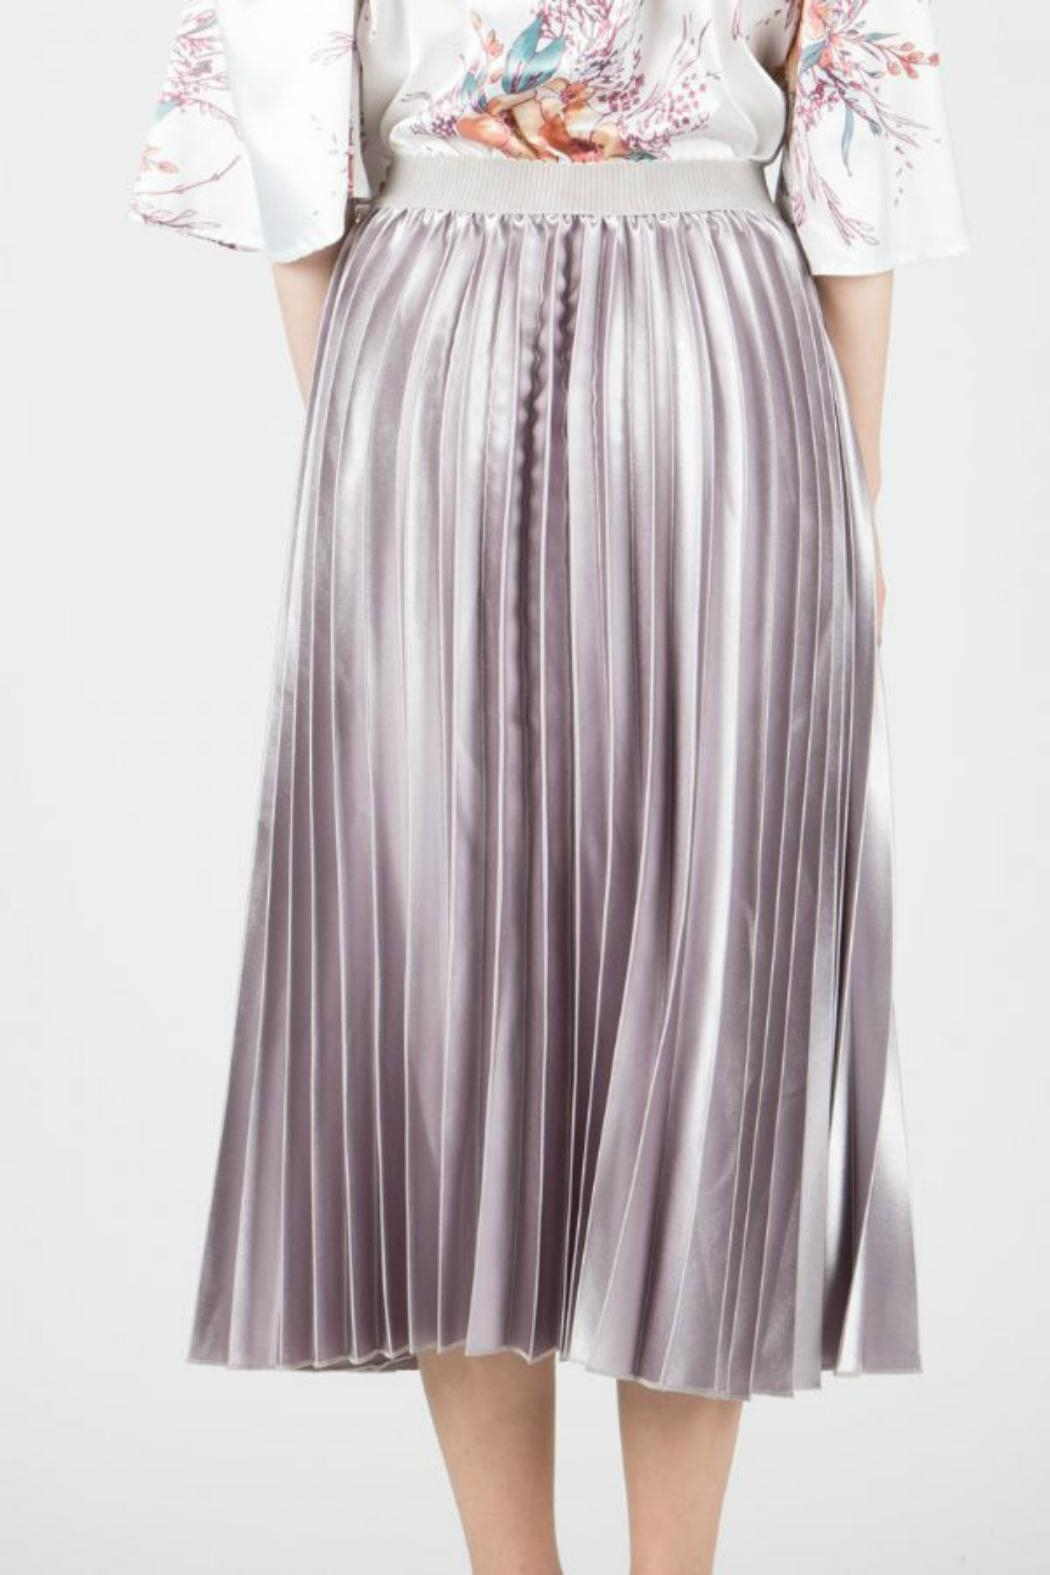 BEULAH STYLE Satin Pleated Skirt - Front Full Image